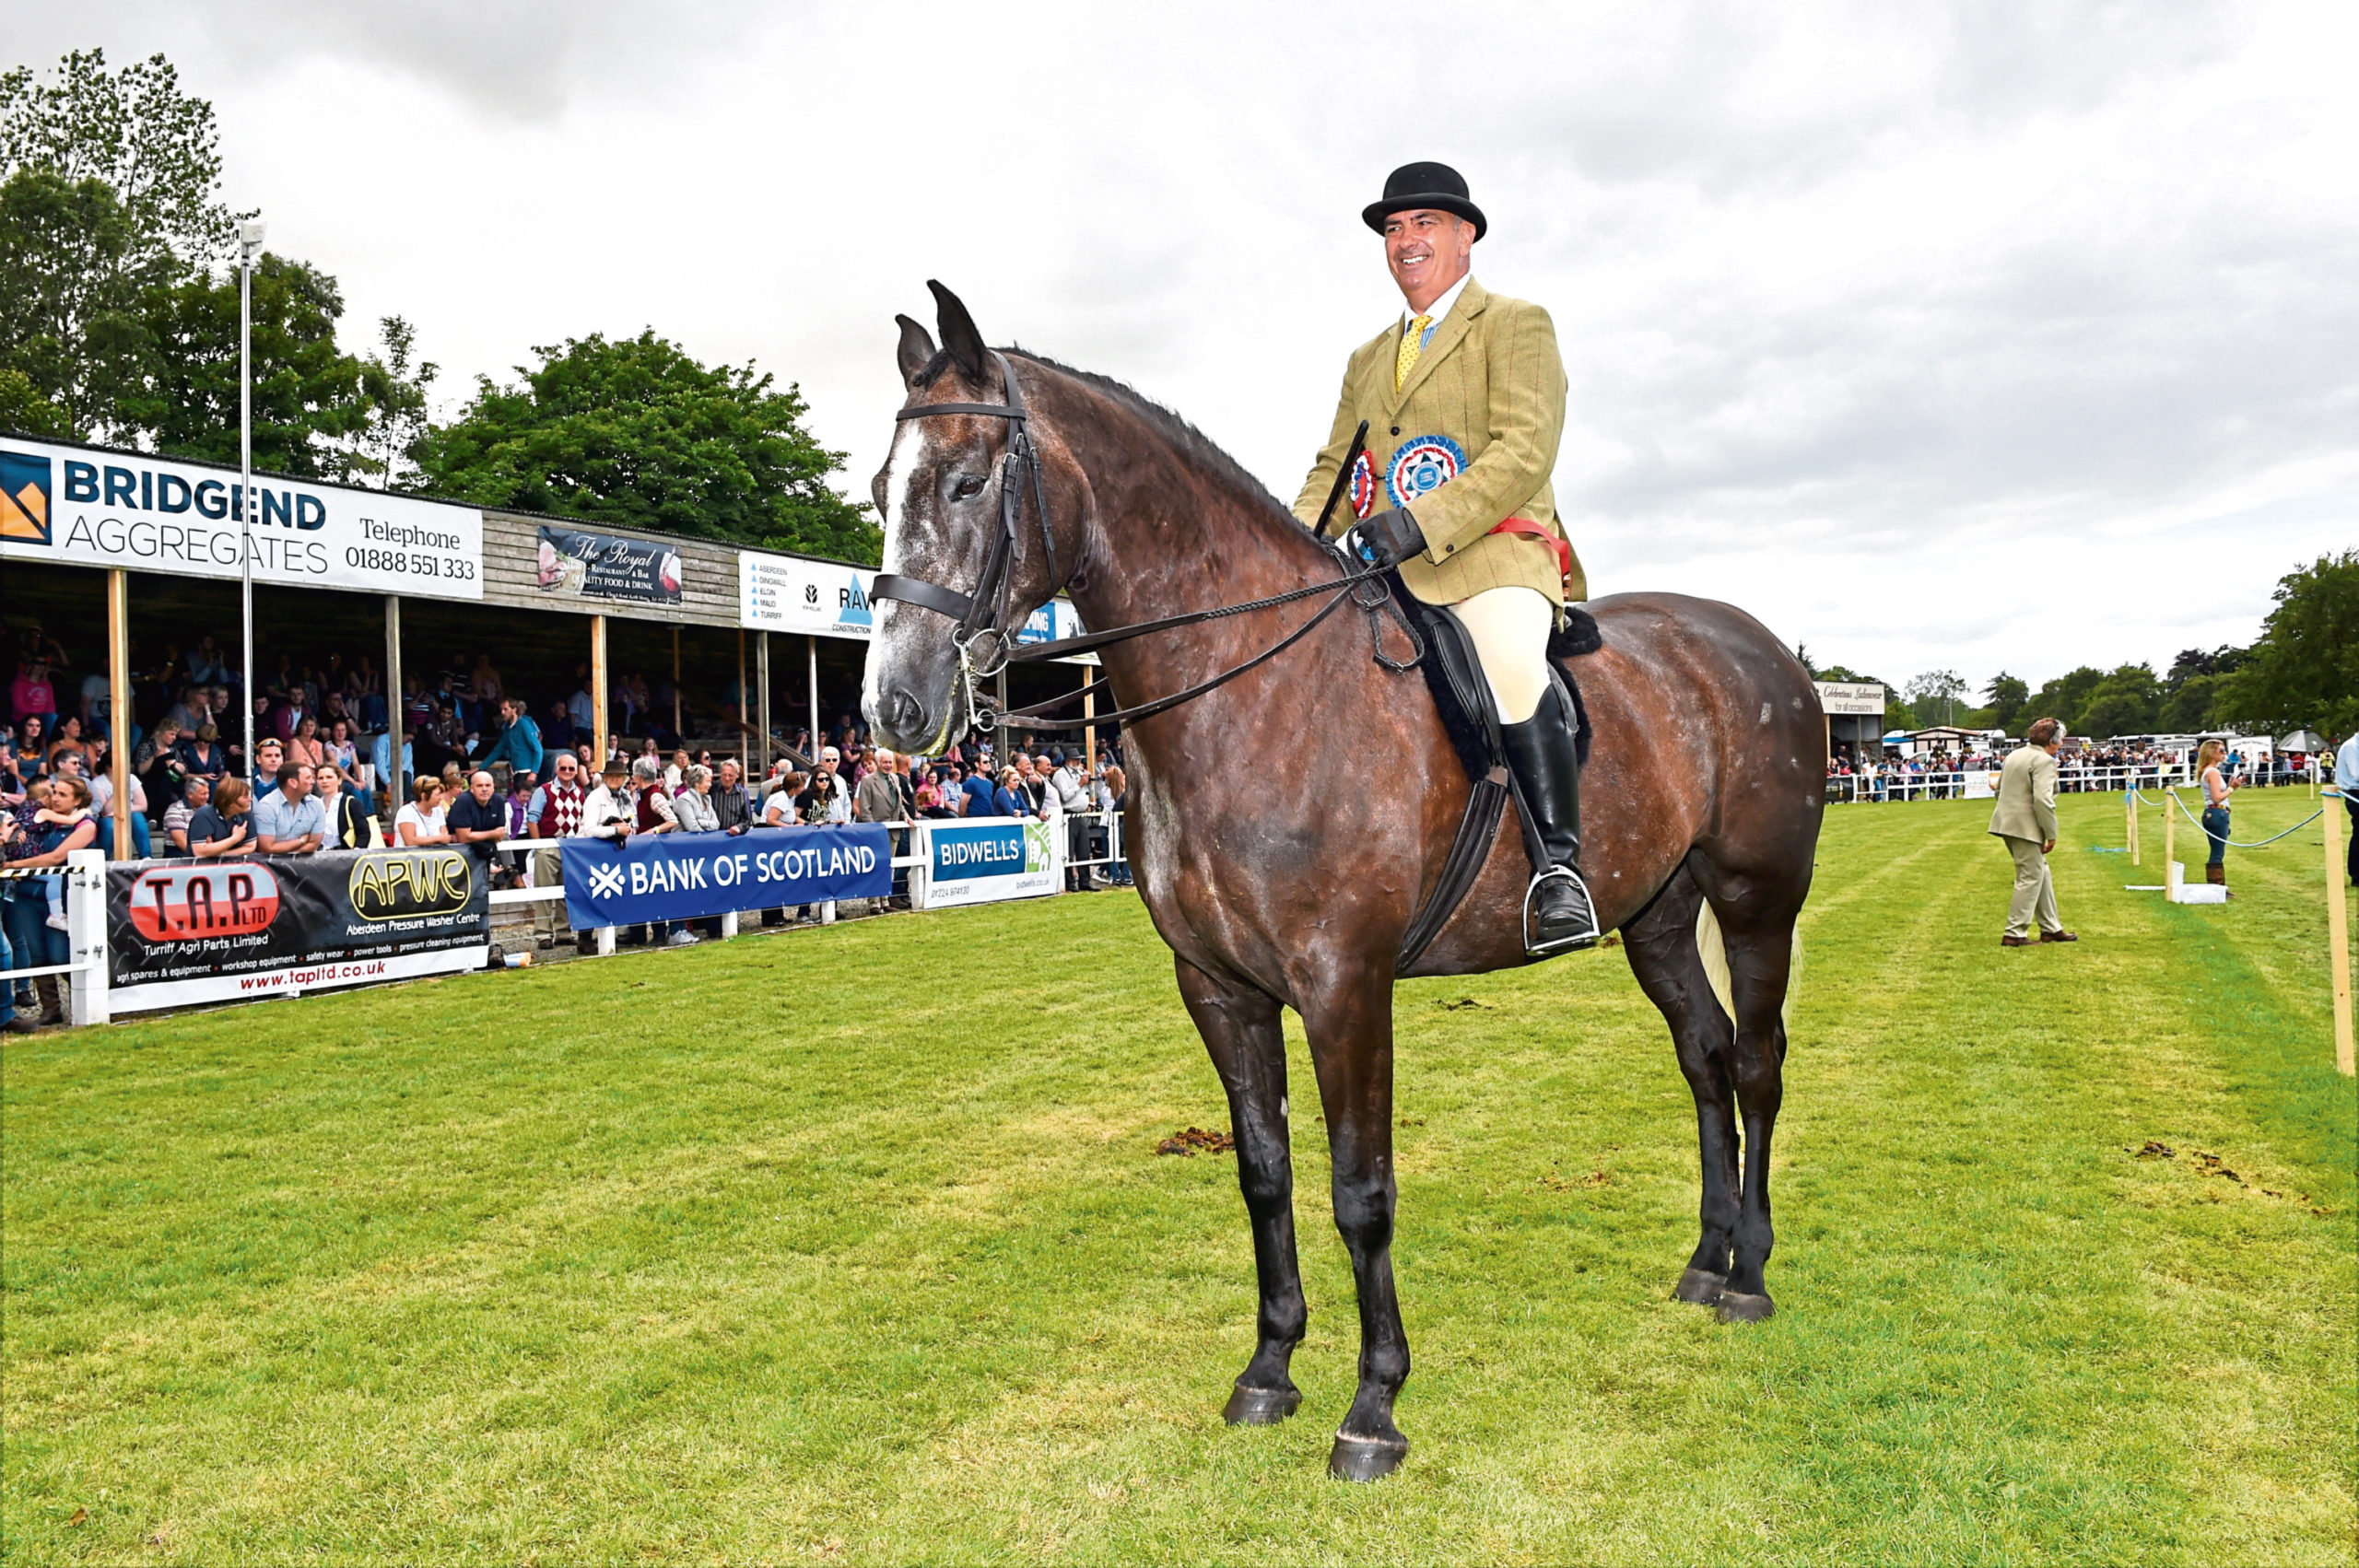 Reserve horse champion (ridden class) James Munro from Wick on Parkmore Rowan at the Turriff Show.  Picture by KEVIN EMSLIE